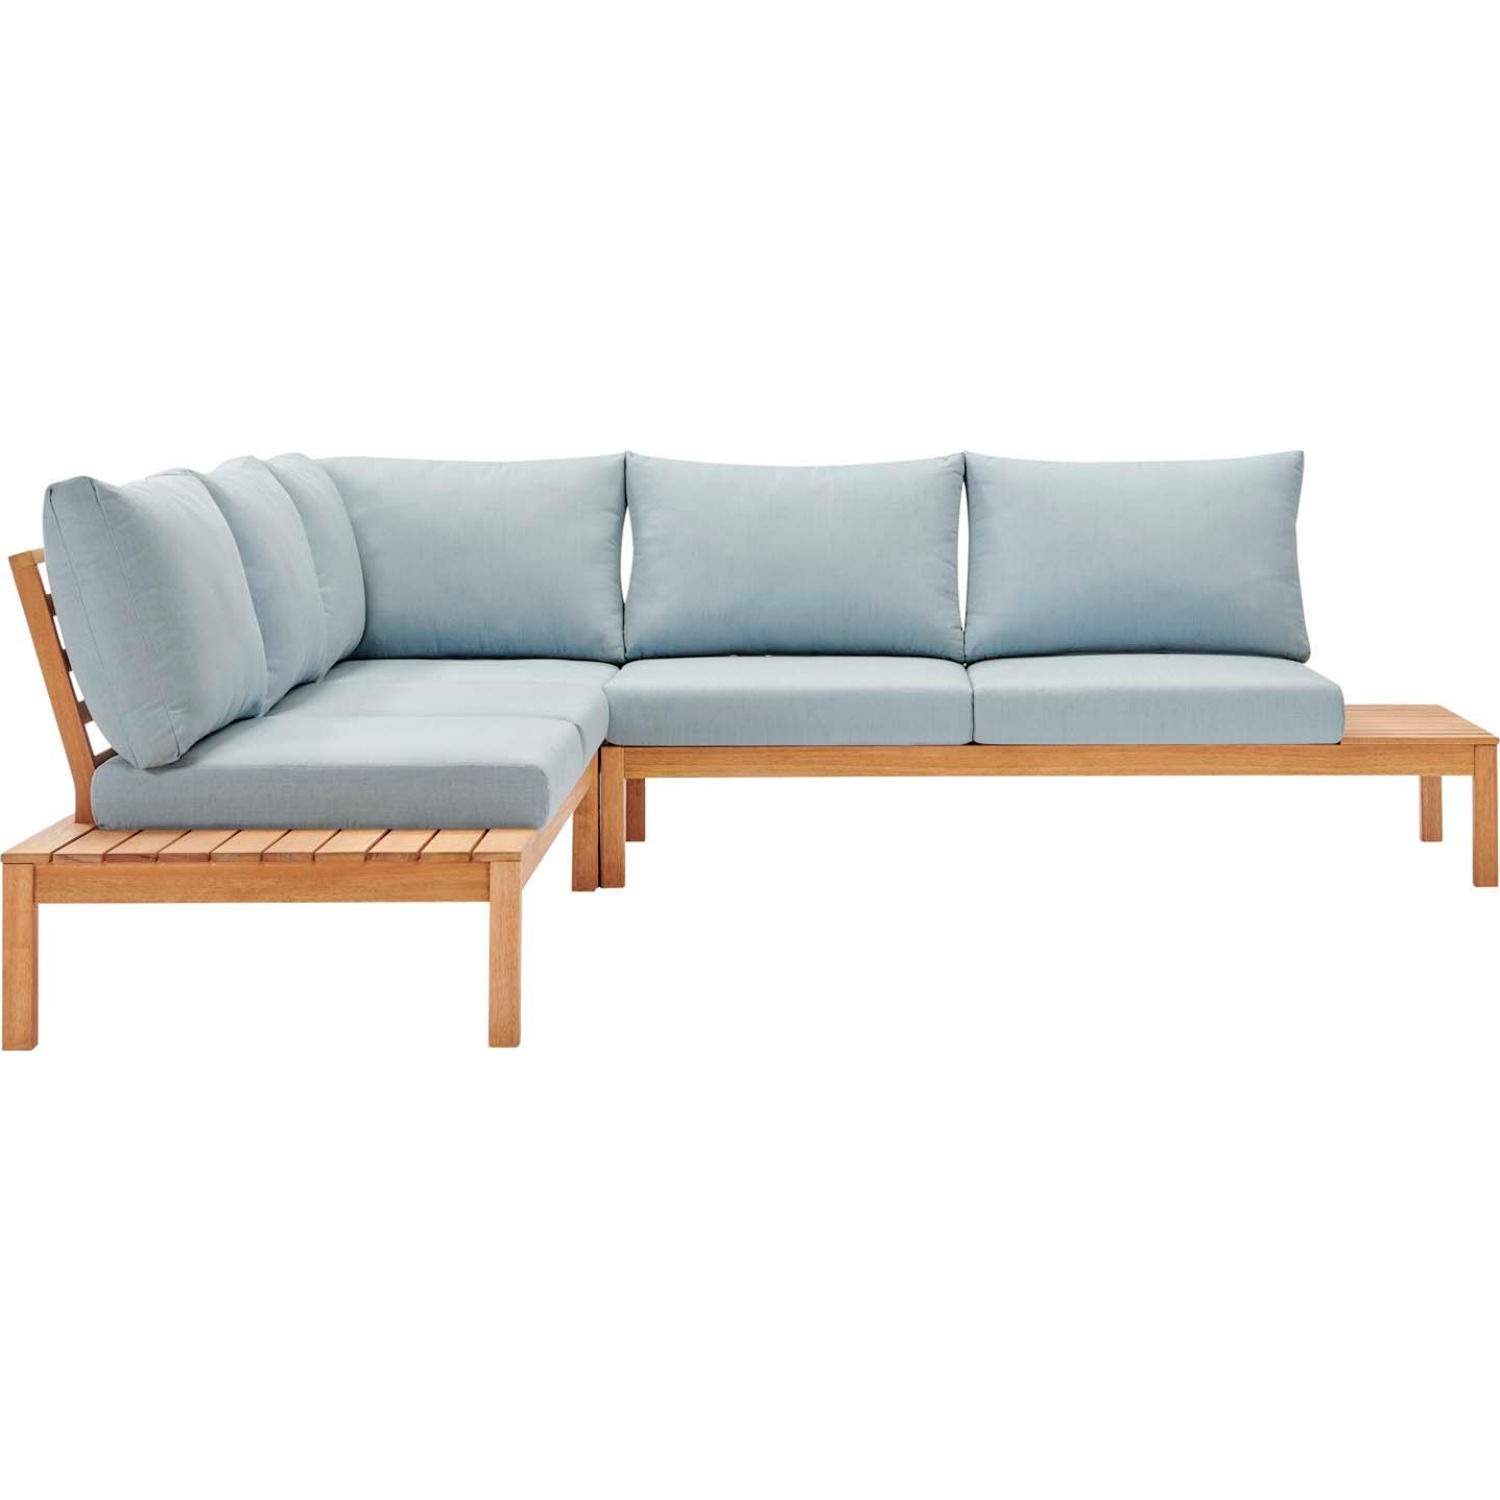 3-Piece Outdoor Sectional In Natural Light Blue - image-0